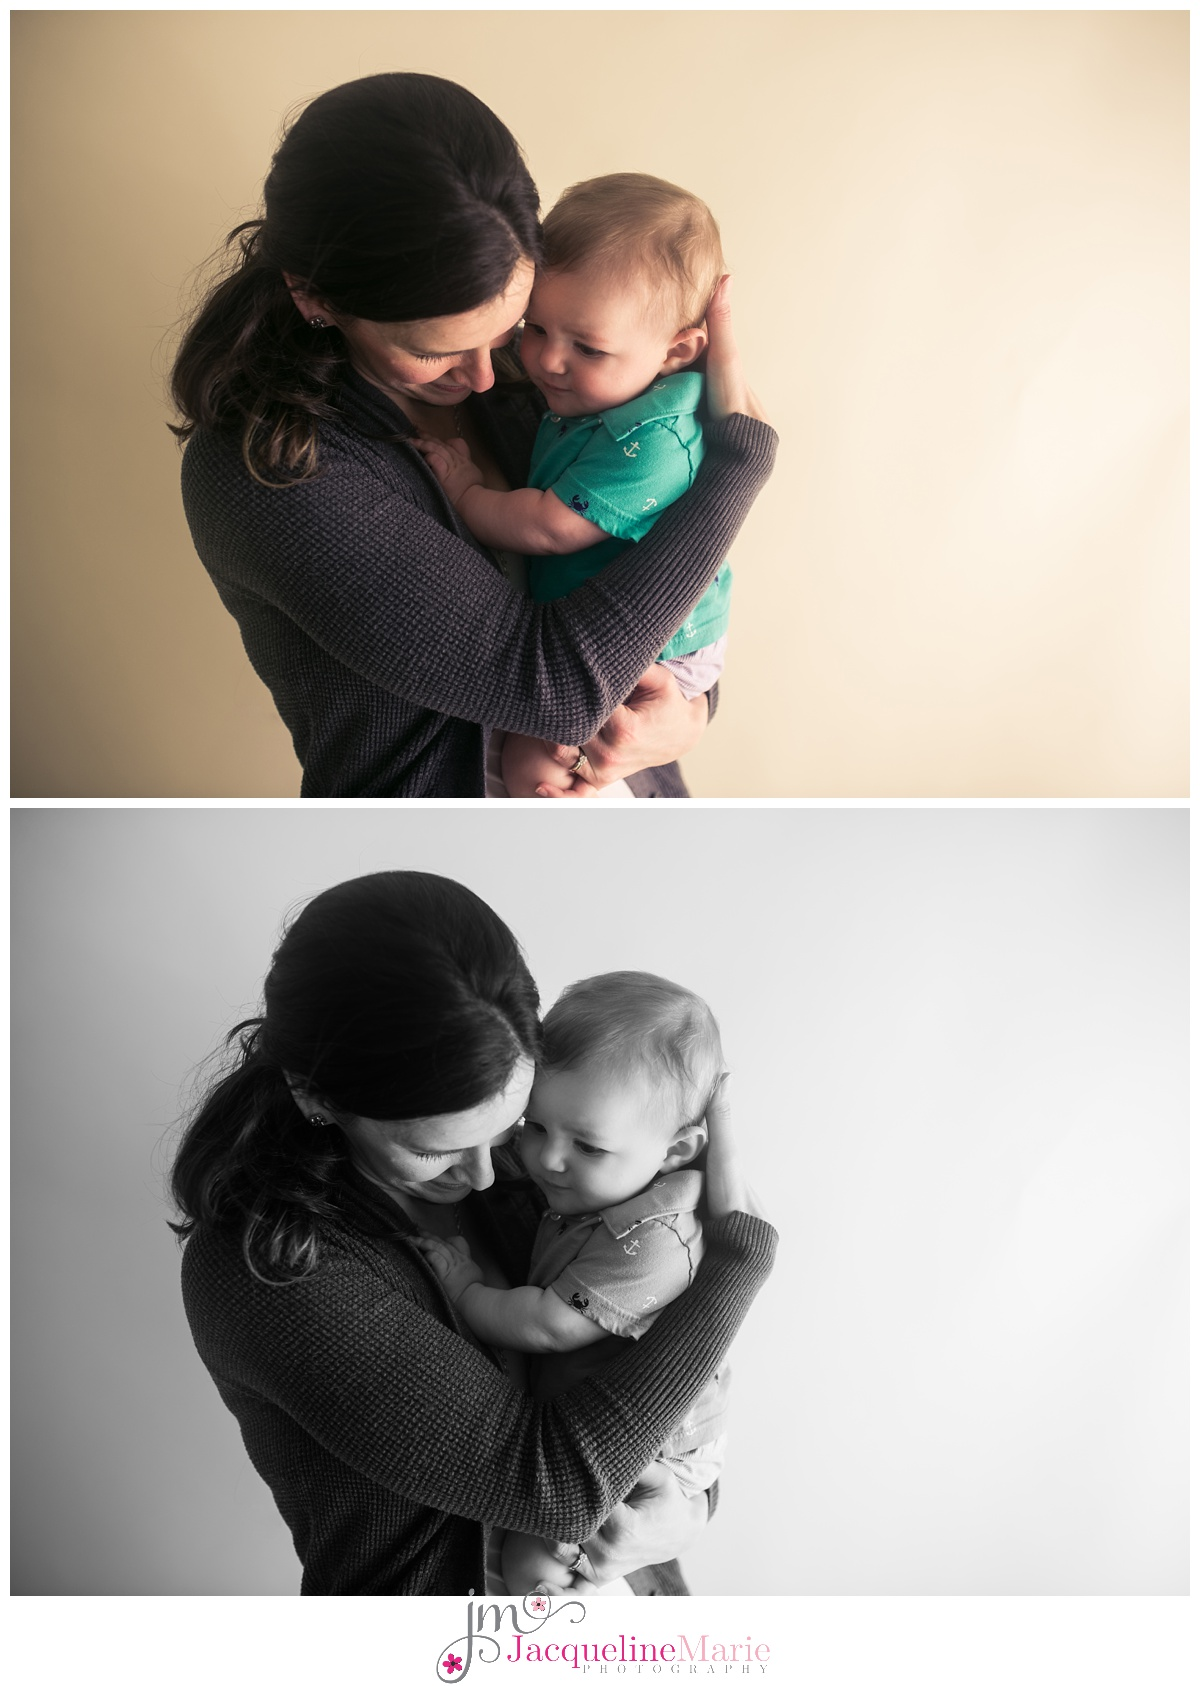 Mother and son portrait | mother and baby pose | baby boy and mother hugging | Columbus Ohio family photographer | Columbus Ohio baby photography | Jacqueline Marie Photography LLC